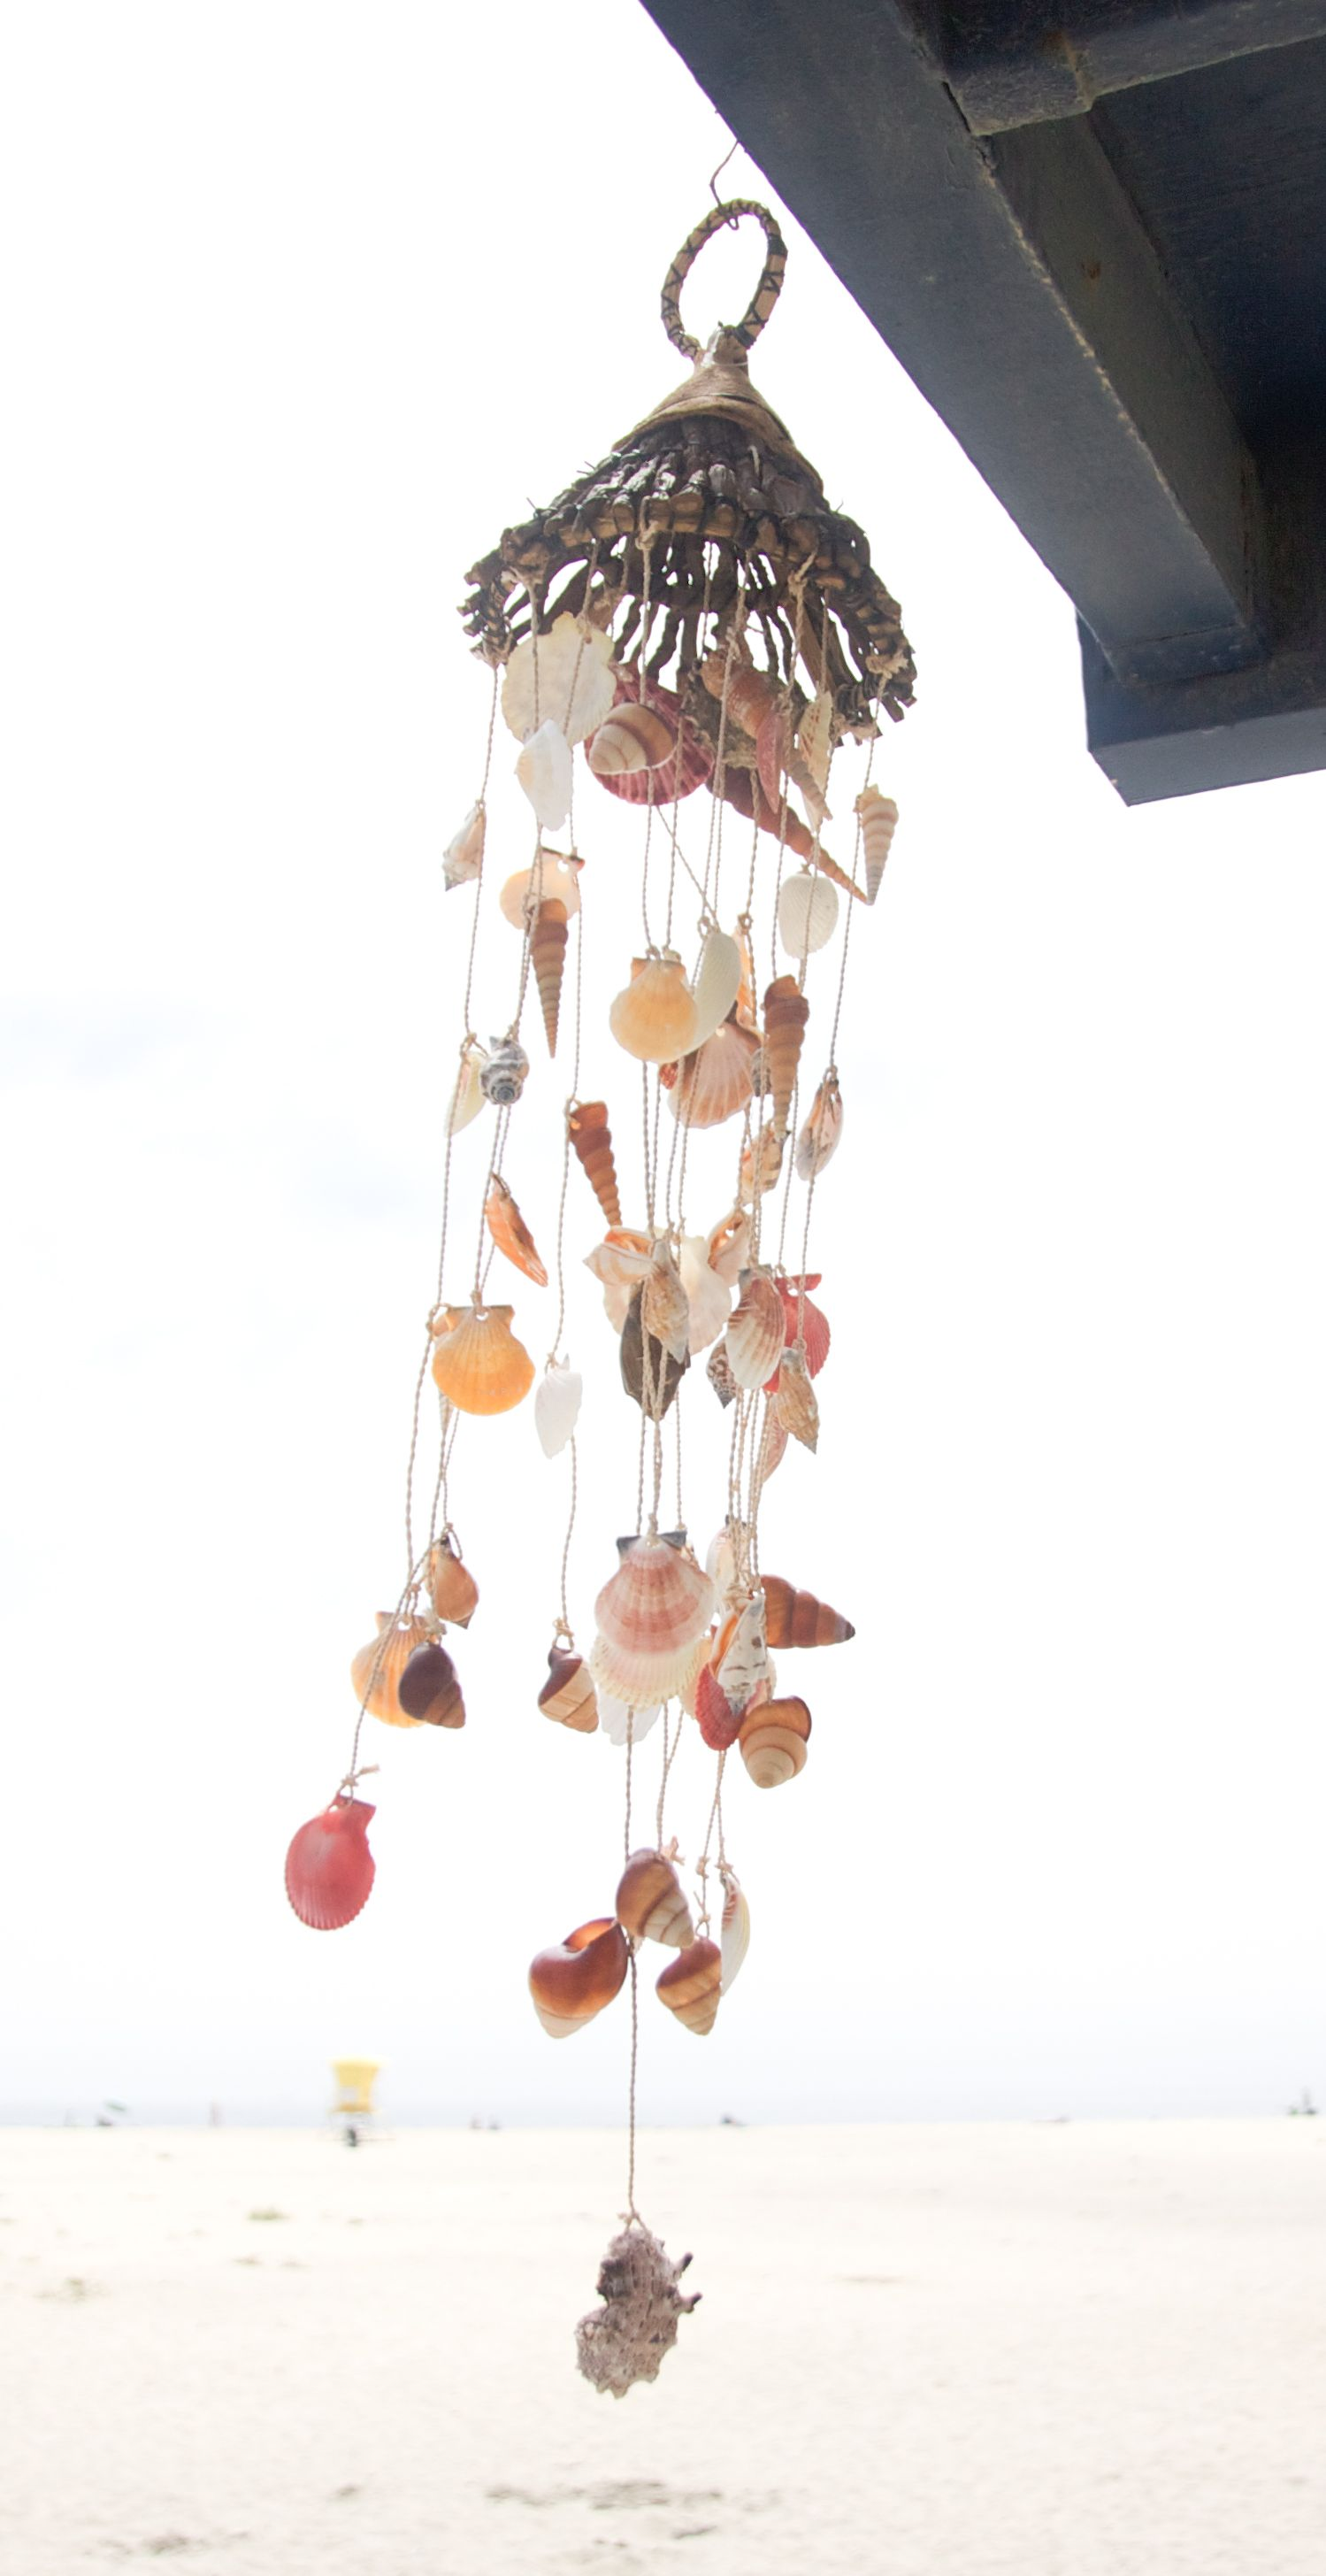 One last pretty wind chime from Big